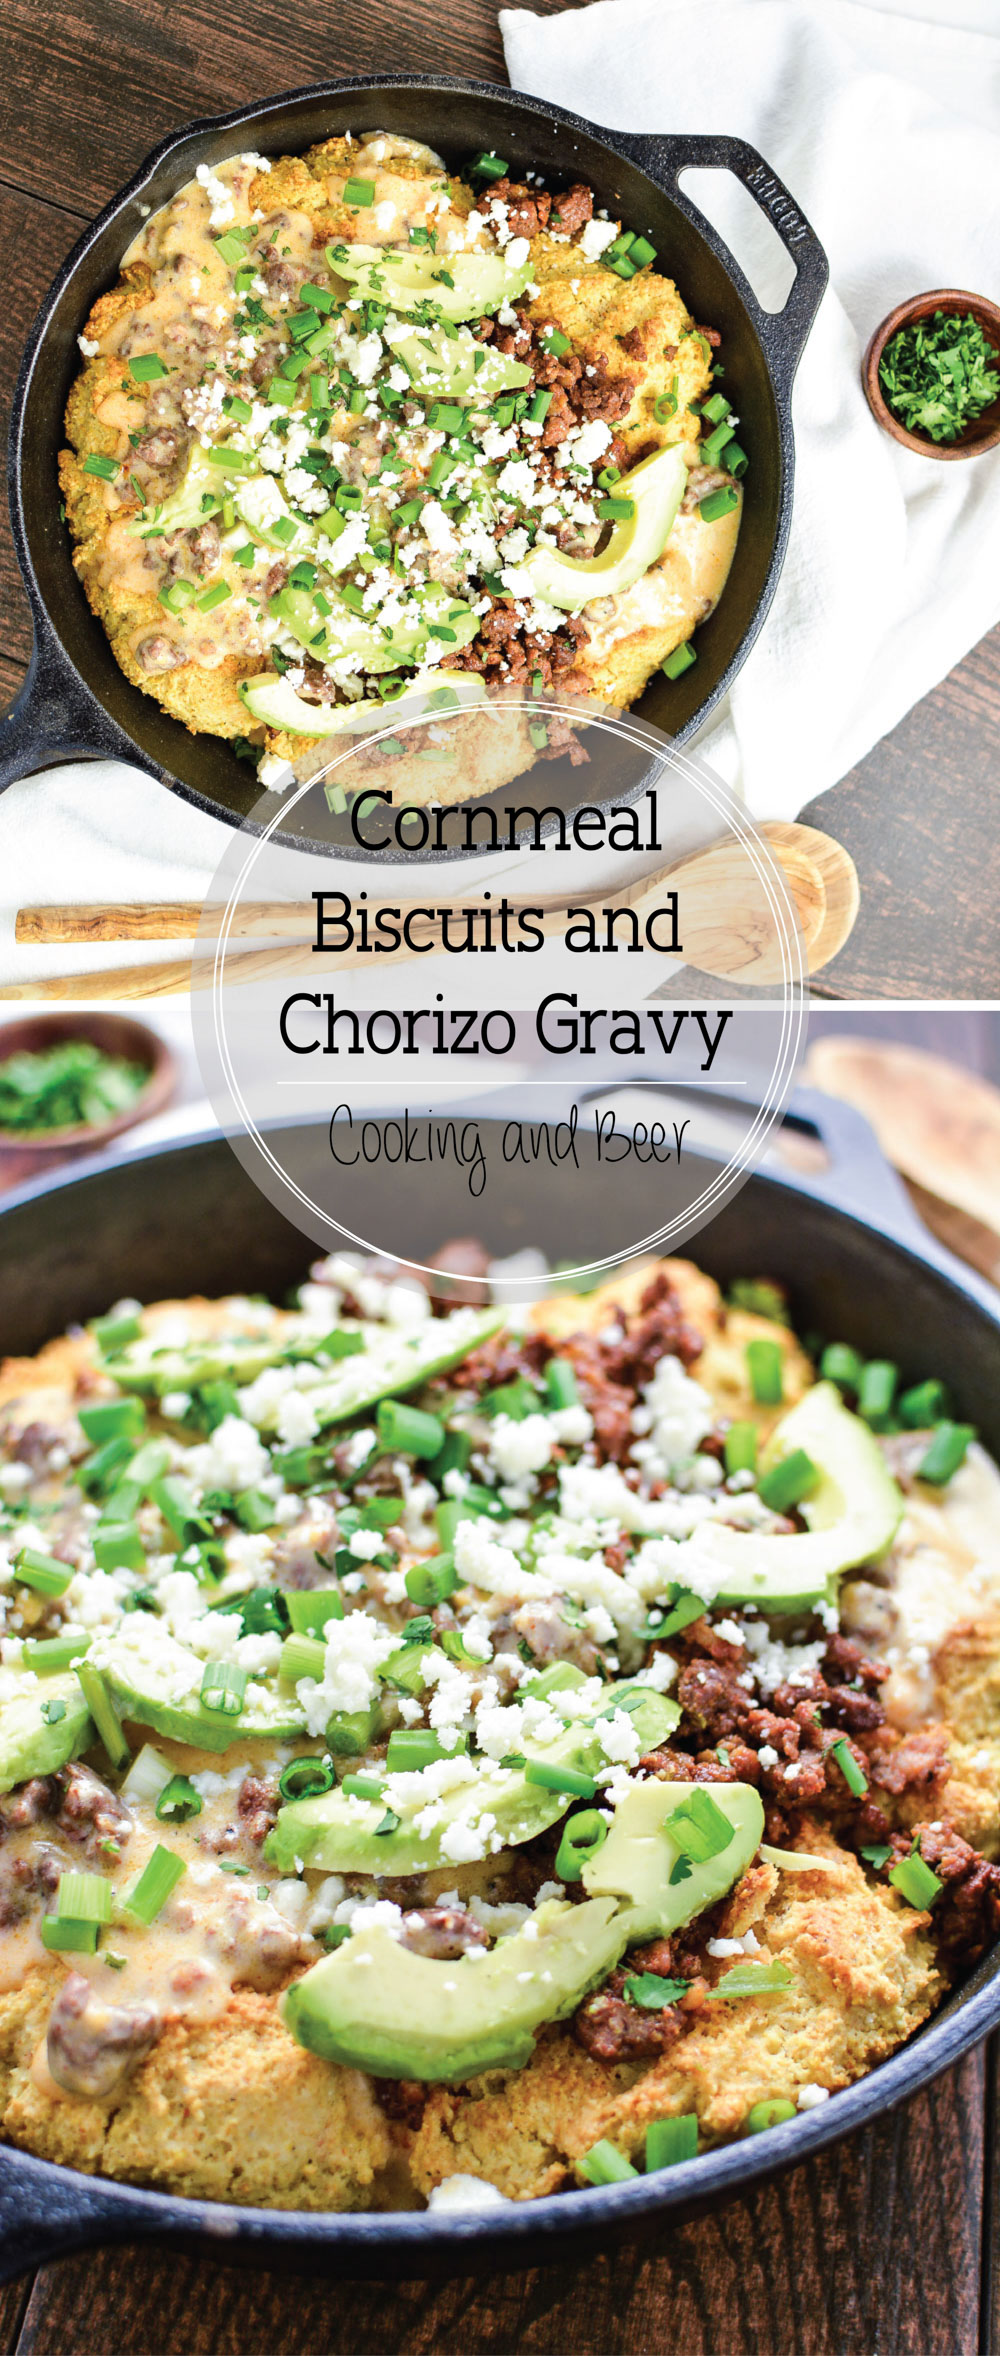 Cornmeal Biscuits and Chorizo Gravy is a fun twist on a classic that's perfect for a quick weeknight meal!